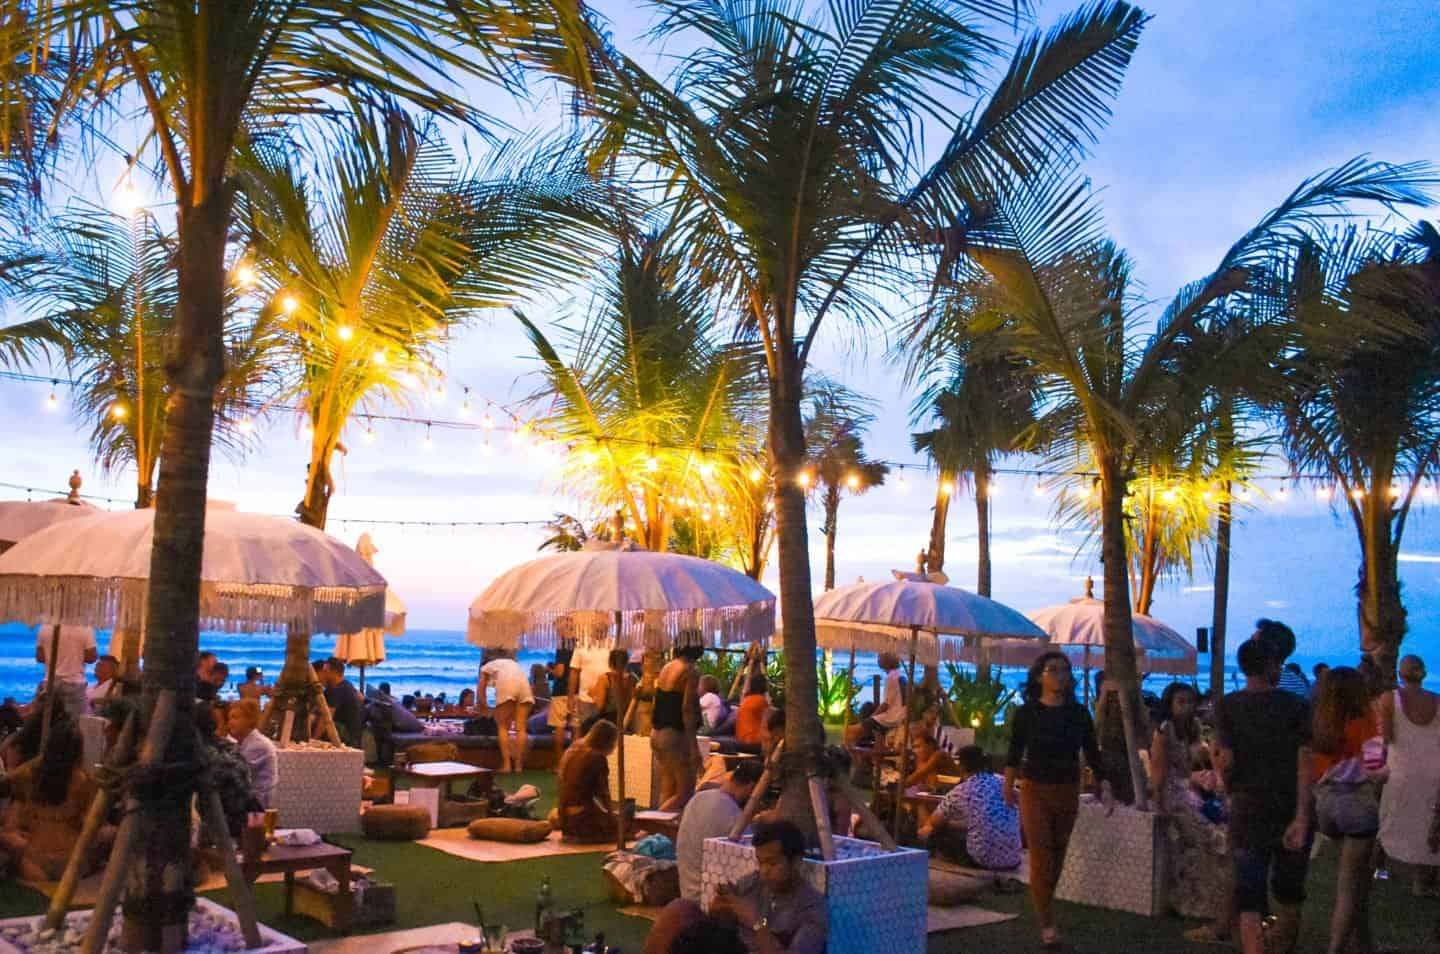 The Lawn beach club in Bali